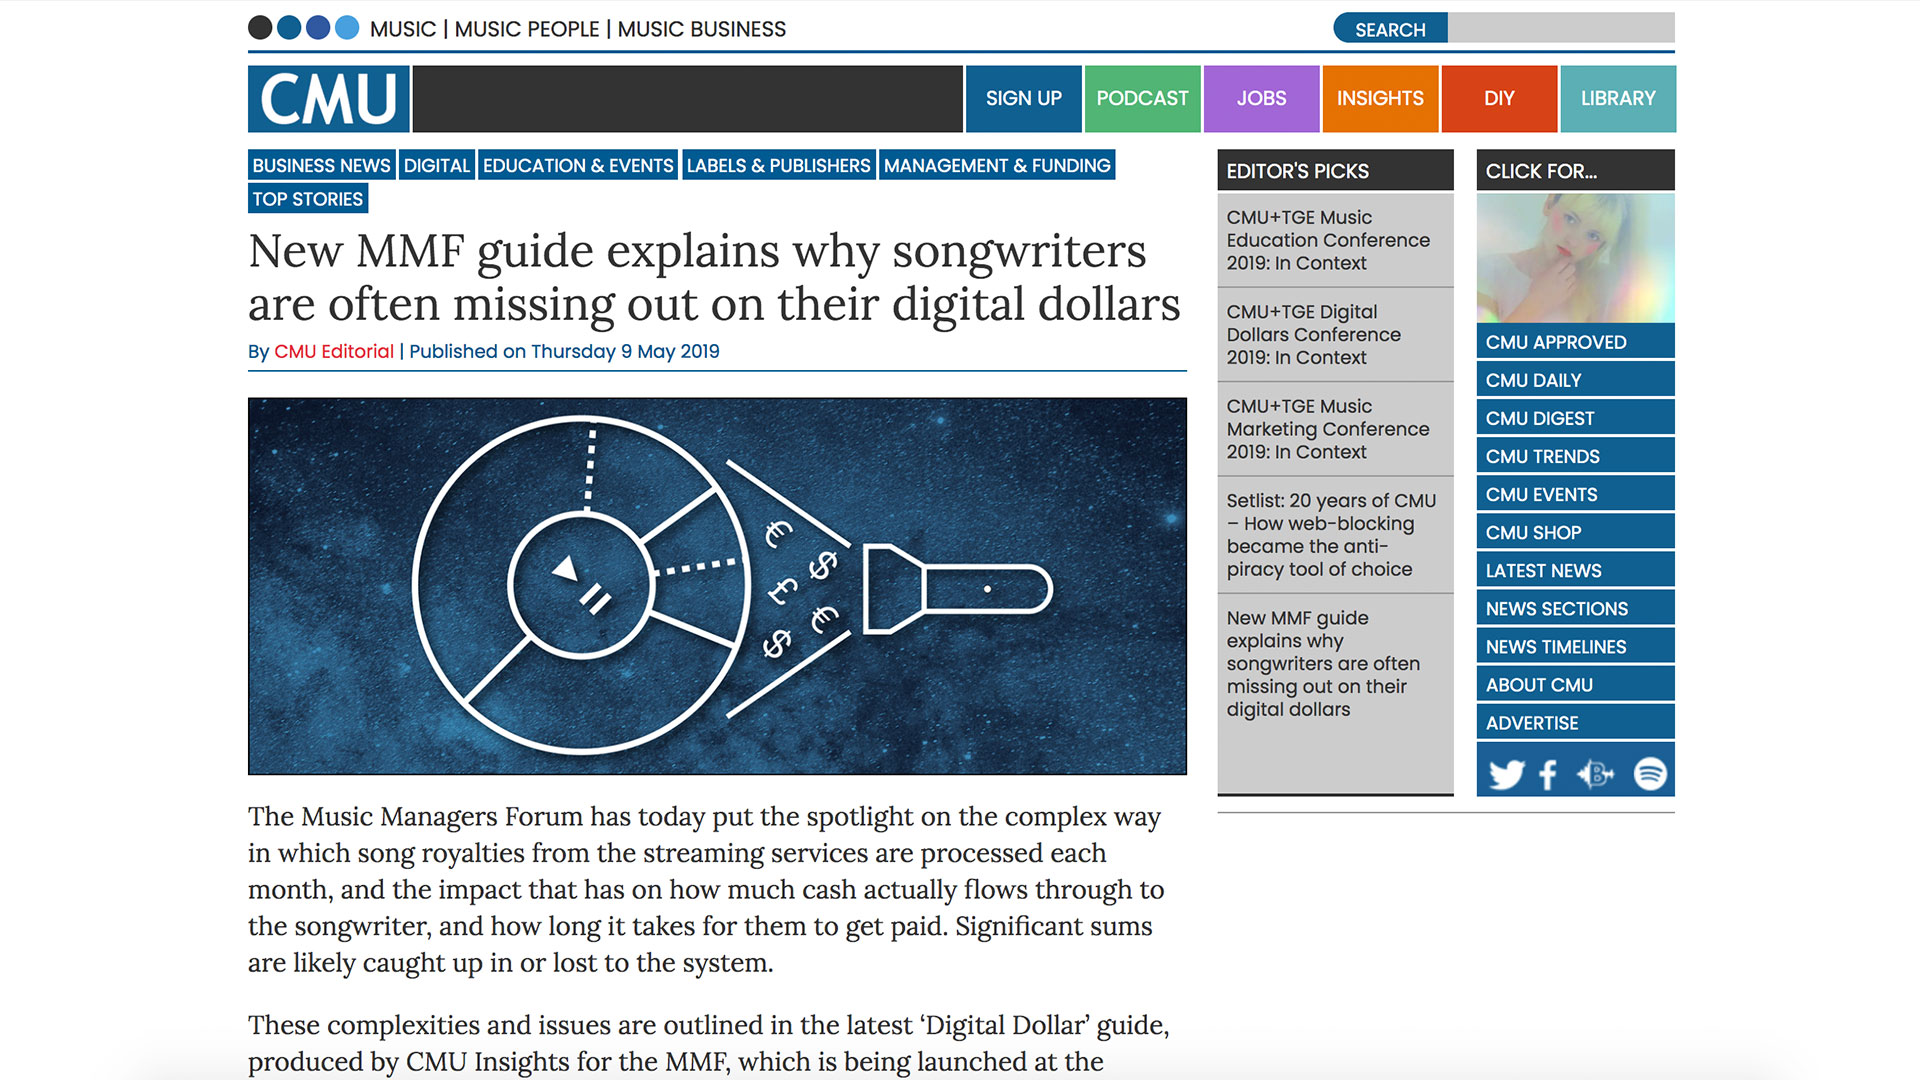 Fairness Rocks News New MMF guide explains why songwriters are often missing out on their digital dollars